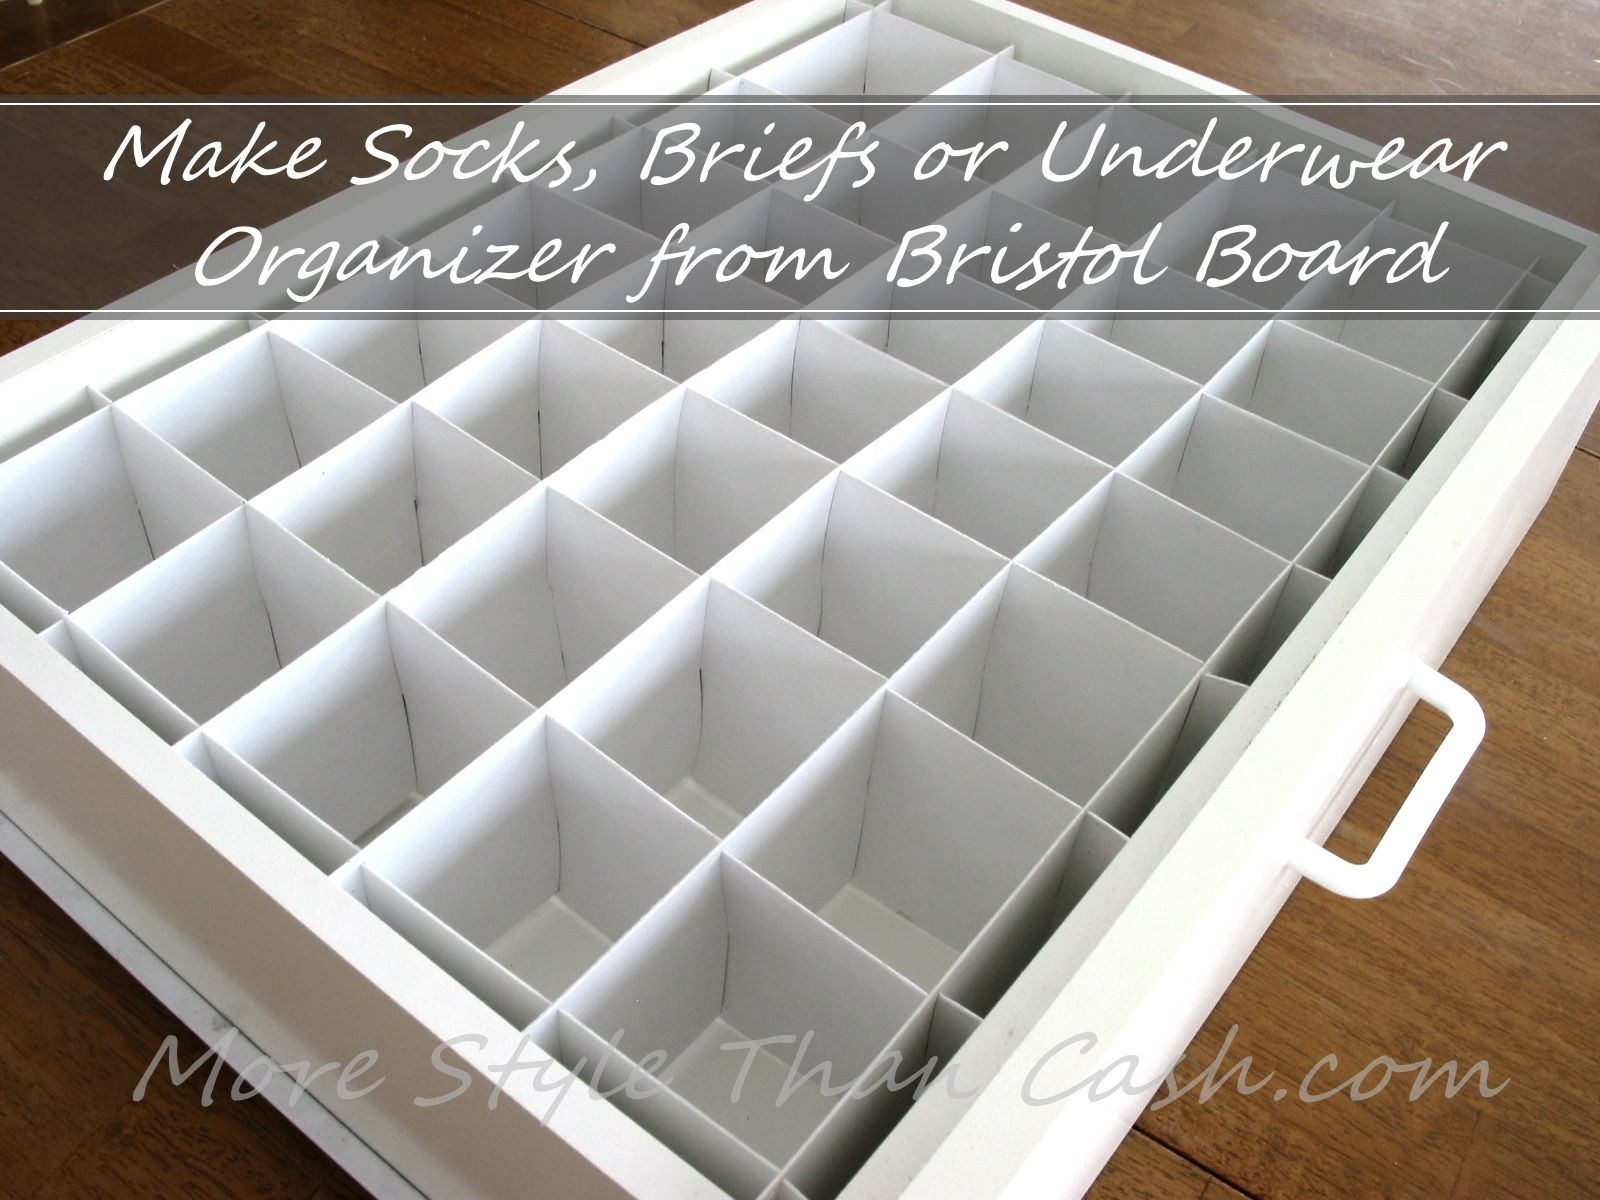 Make Socks Organizer From Bristol Board Bristol